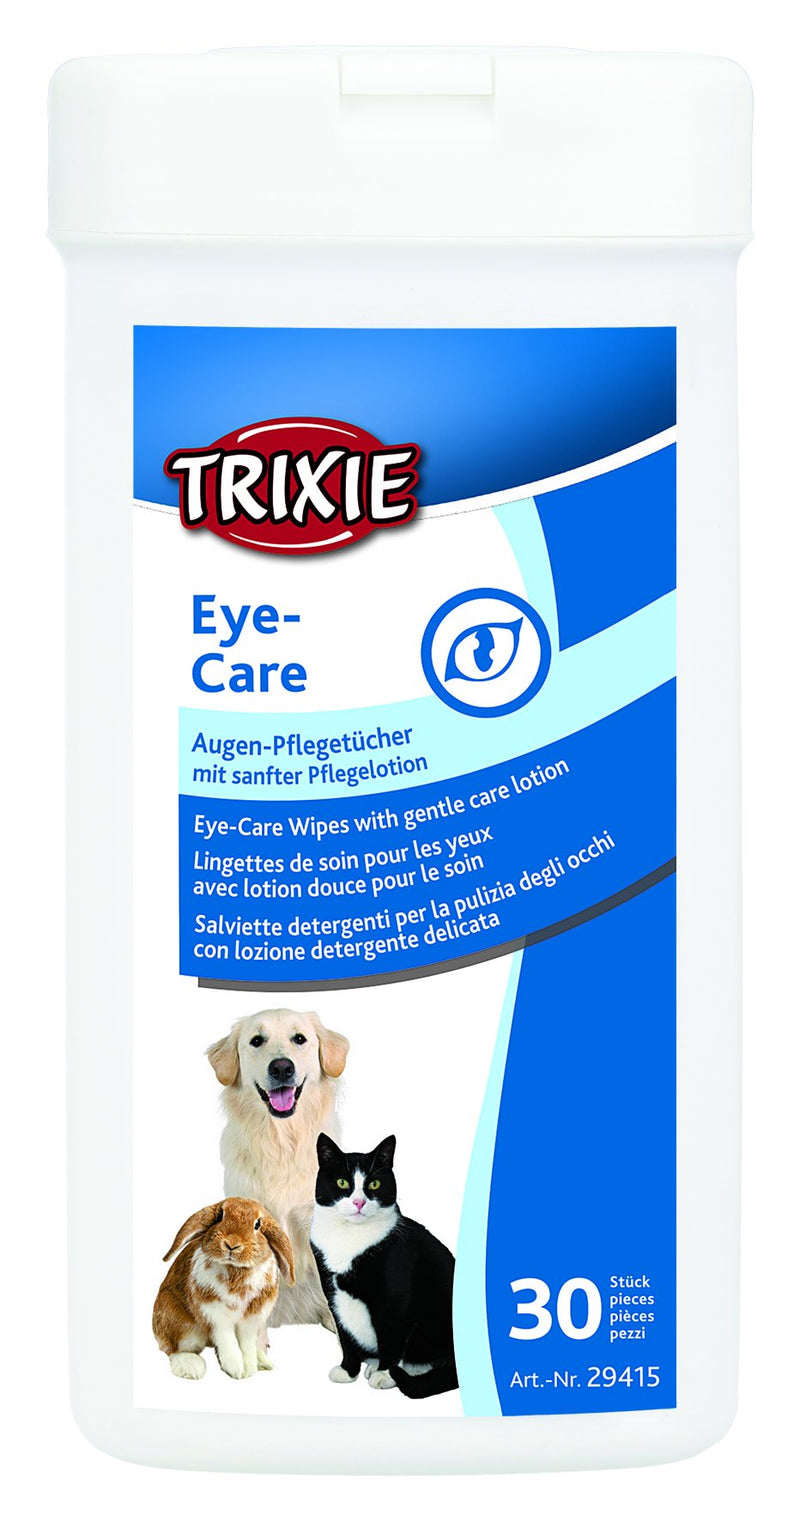 29415 Eye-care wipes, 30 pcs.